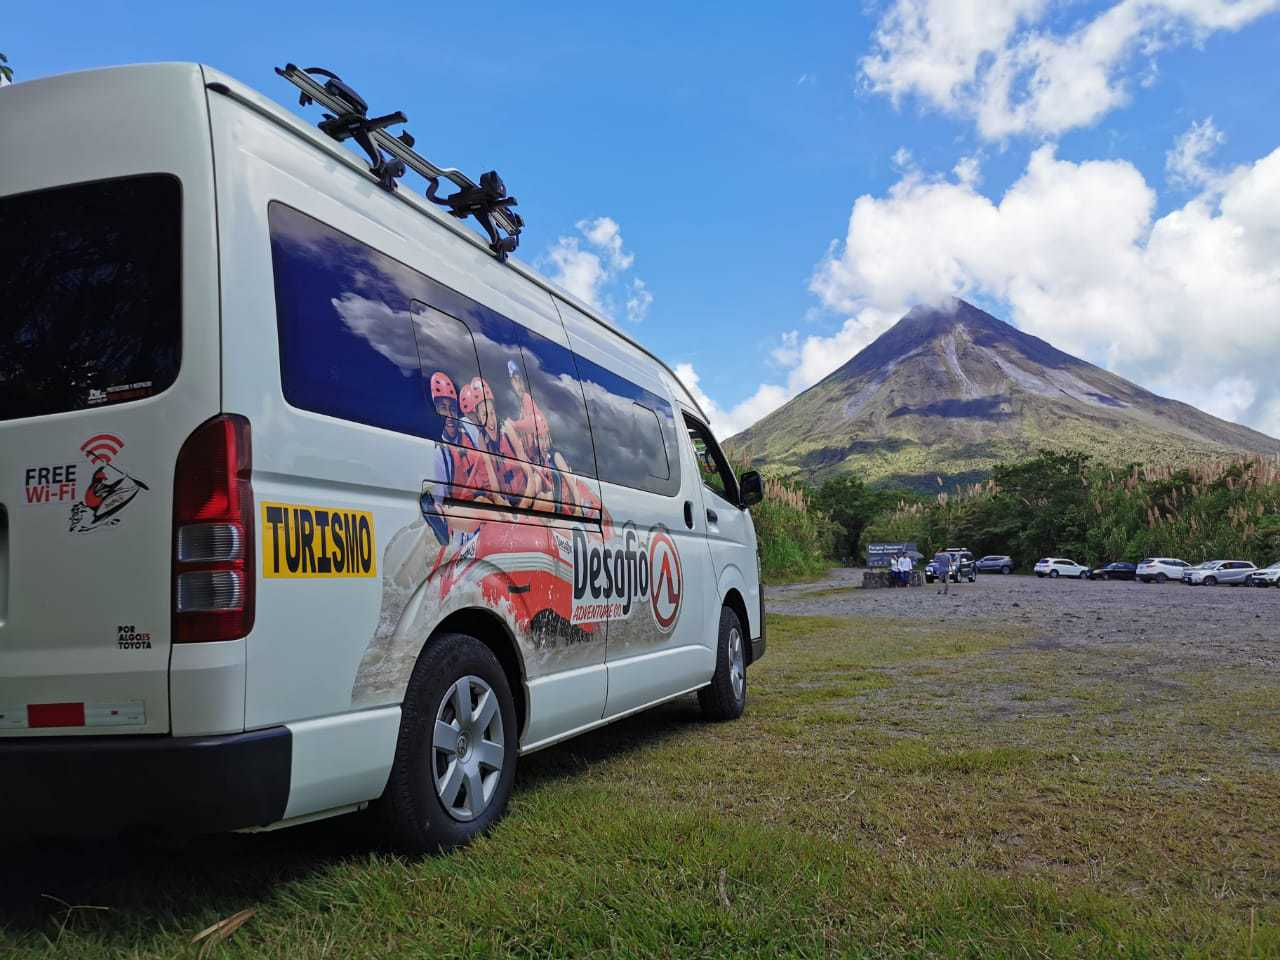 Travel around Costa Rica with free our  wifi!